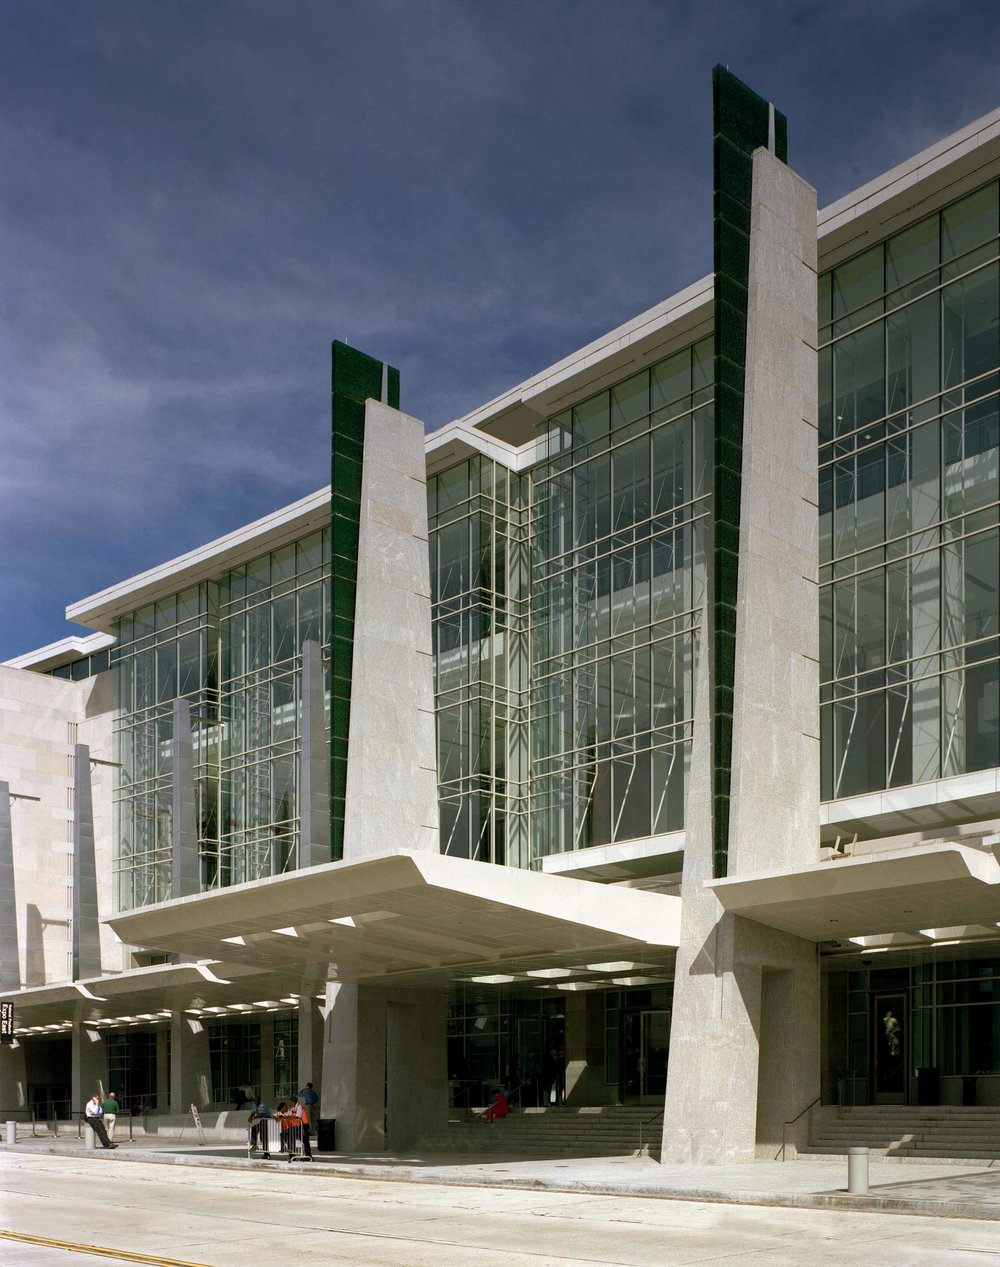 Convention-Center-003-Exterior-3c.jpg